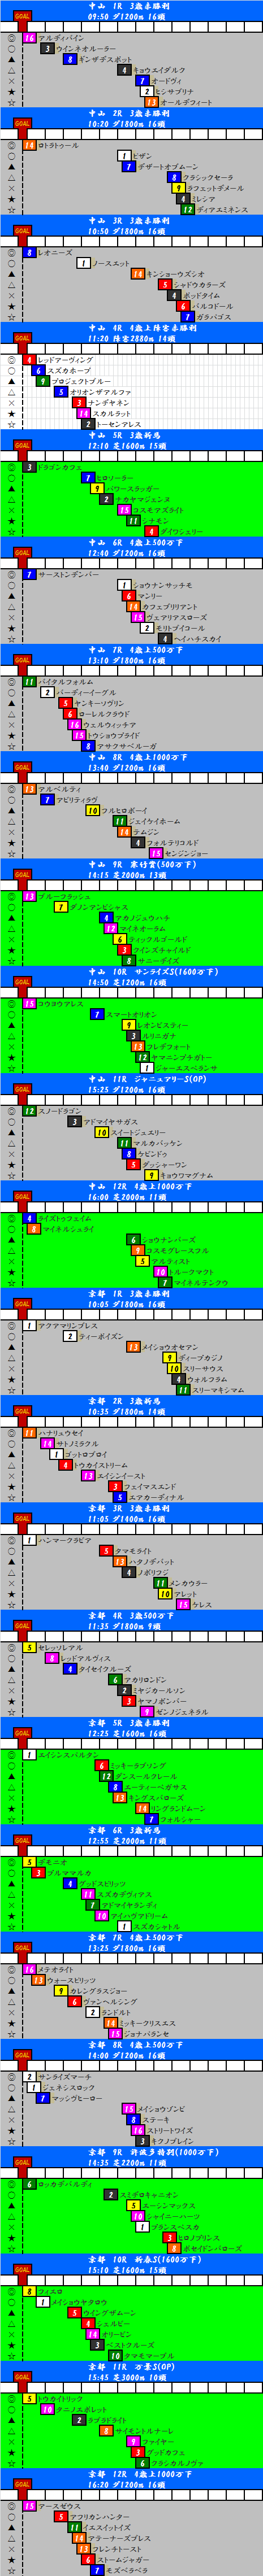 20140106.png